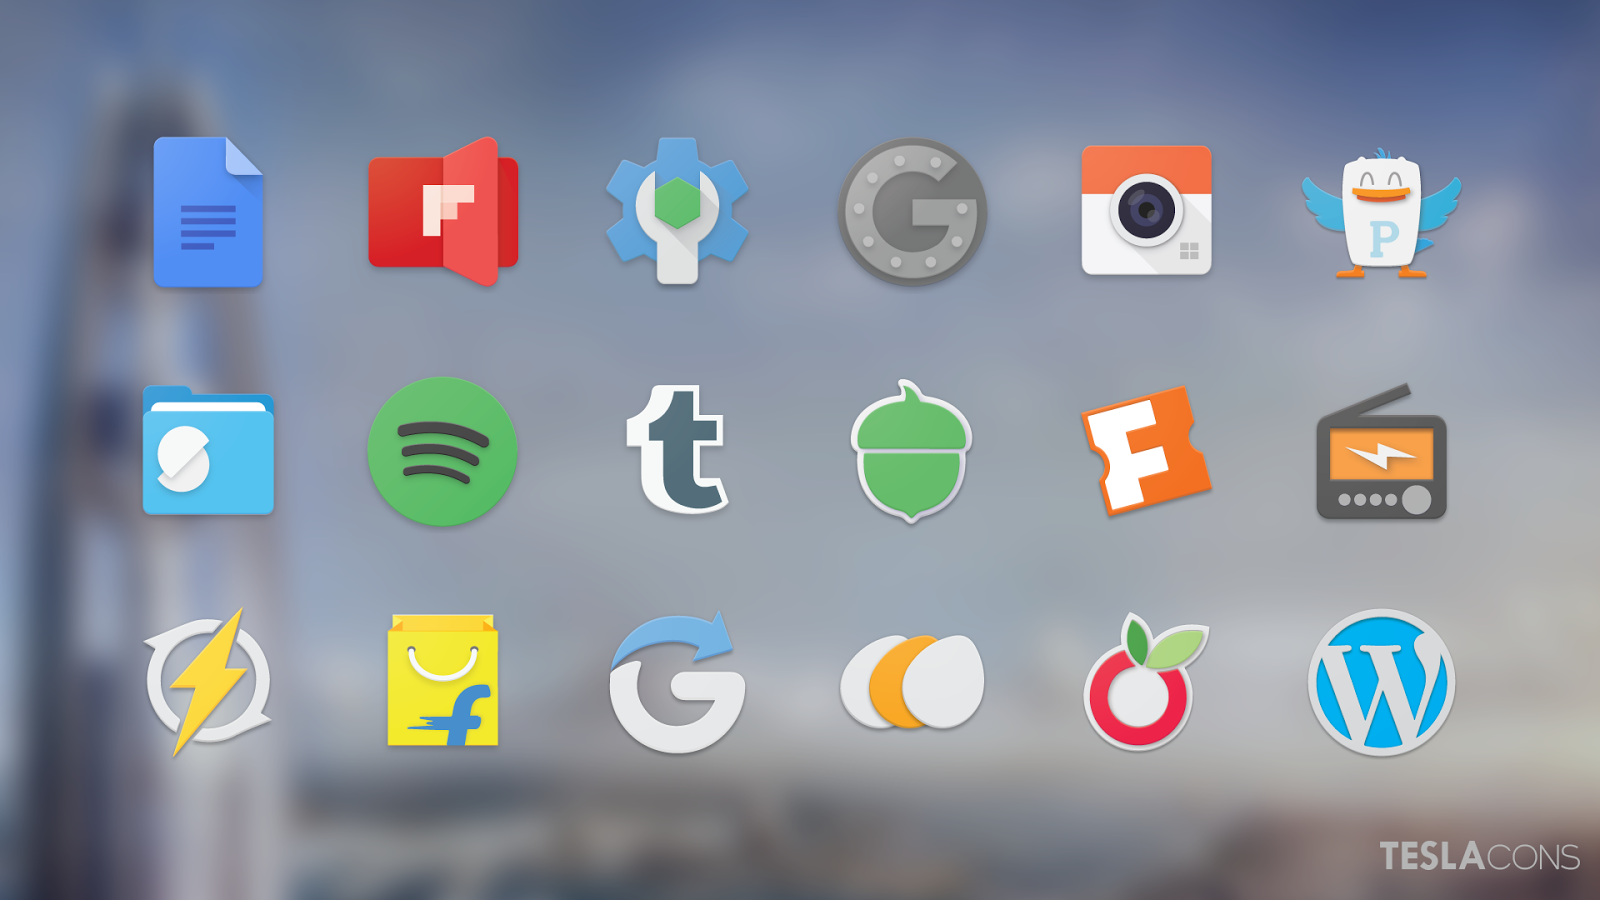 Teslacons Icon Pack Screenshot 2